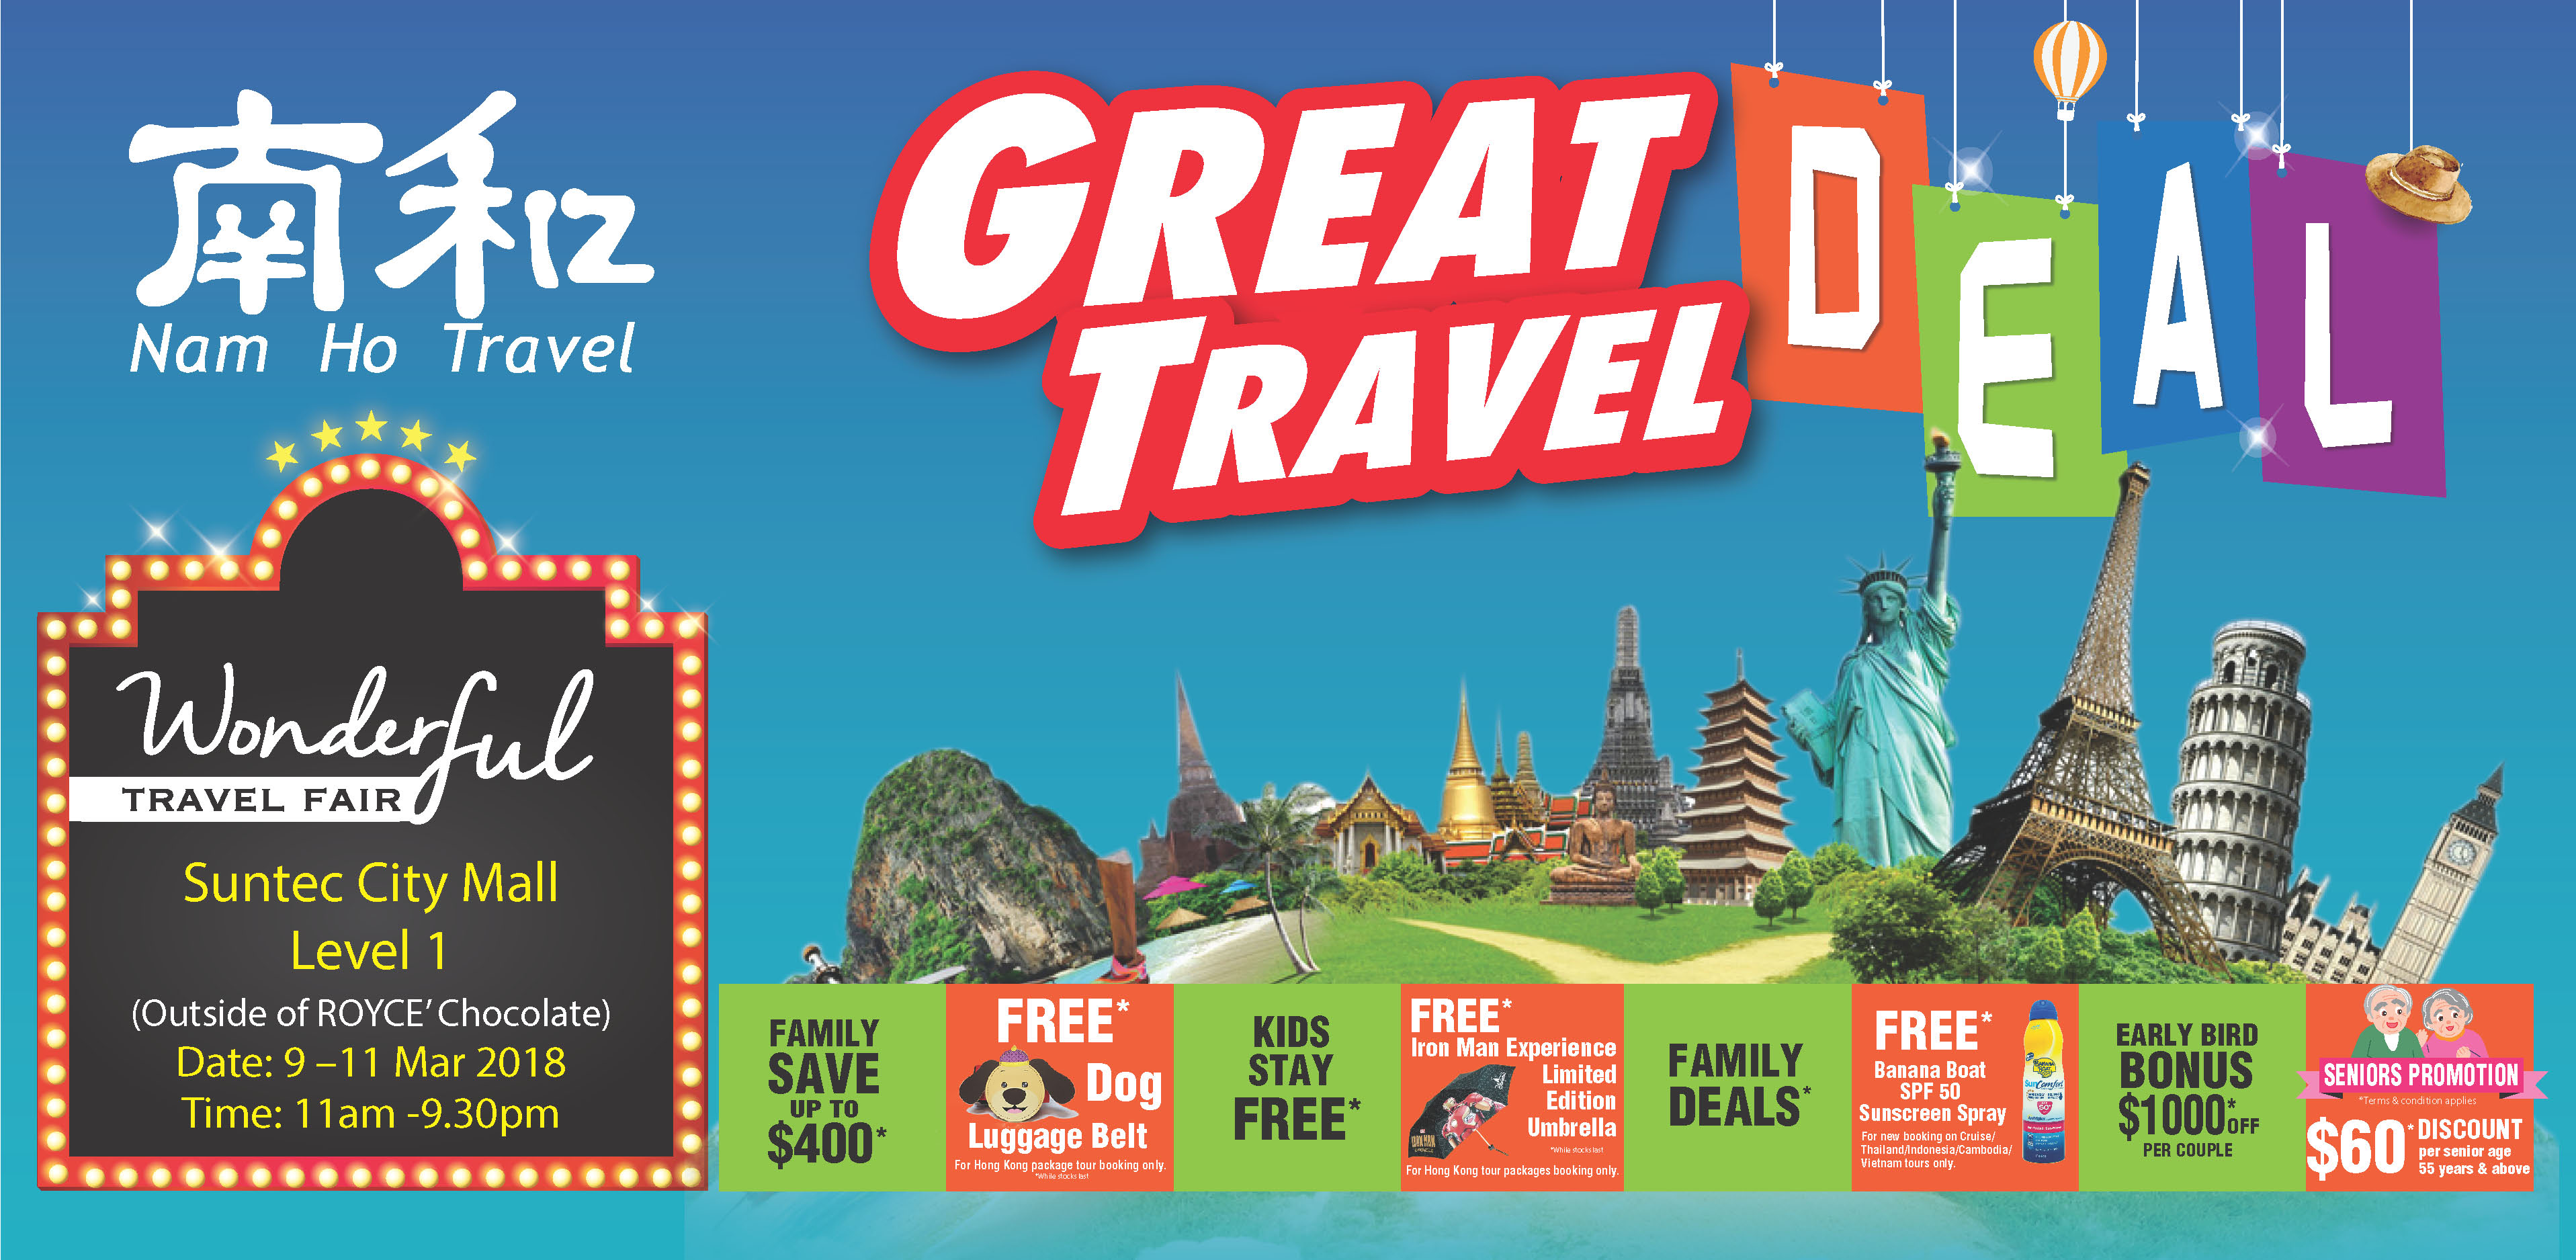 Nam Ho Travel - Great Travel Deal